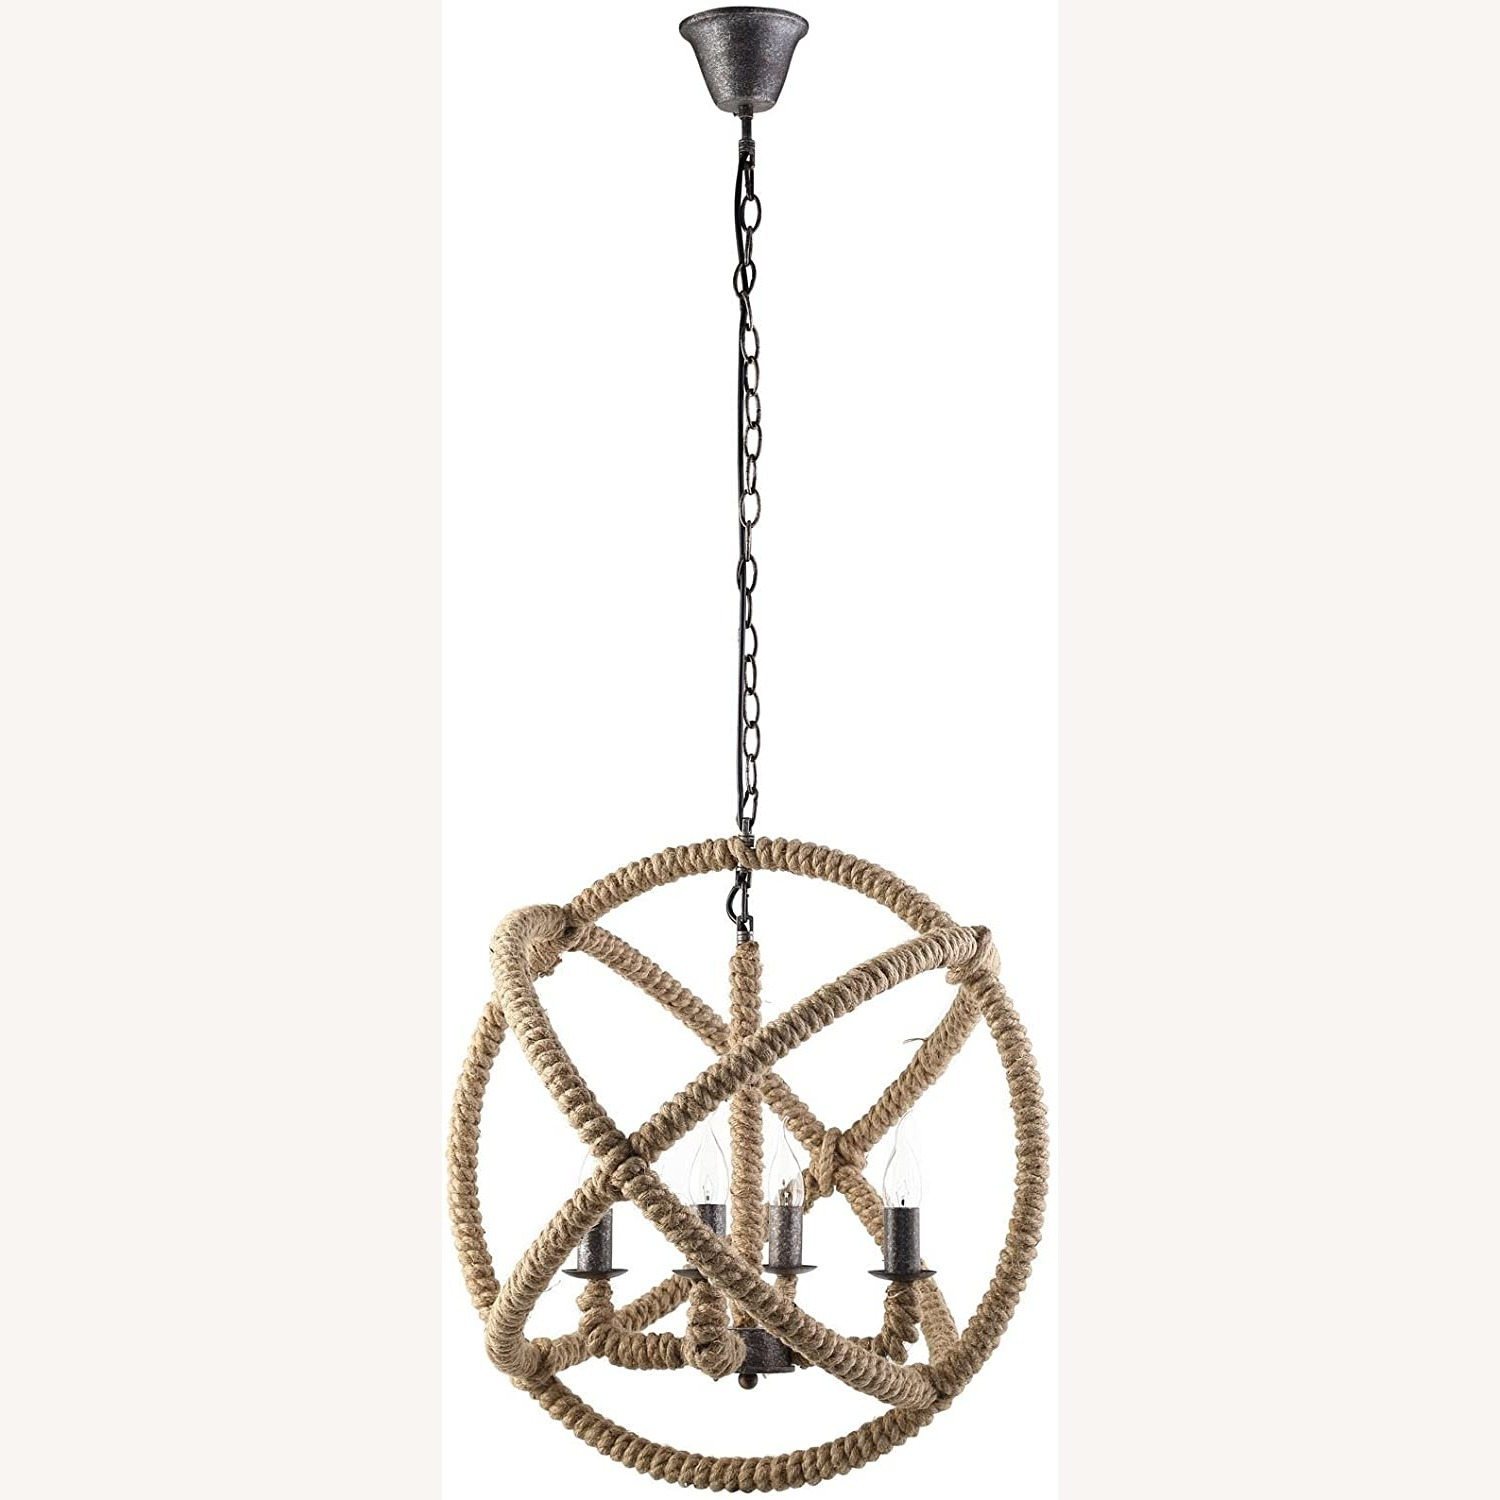 Modern Chandelier In Brown Rope Construction - image-0